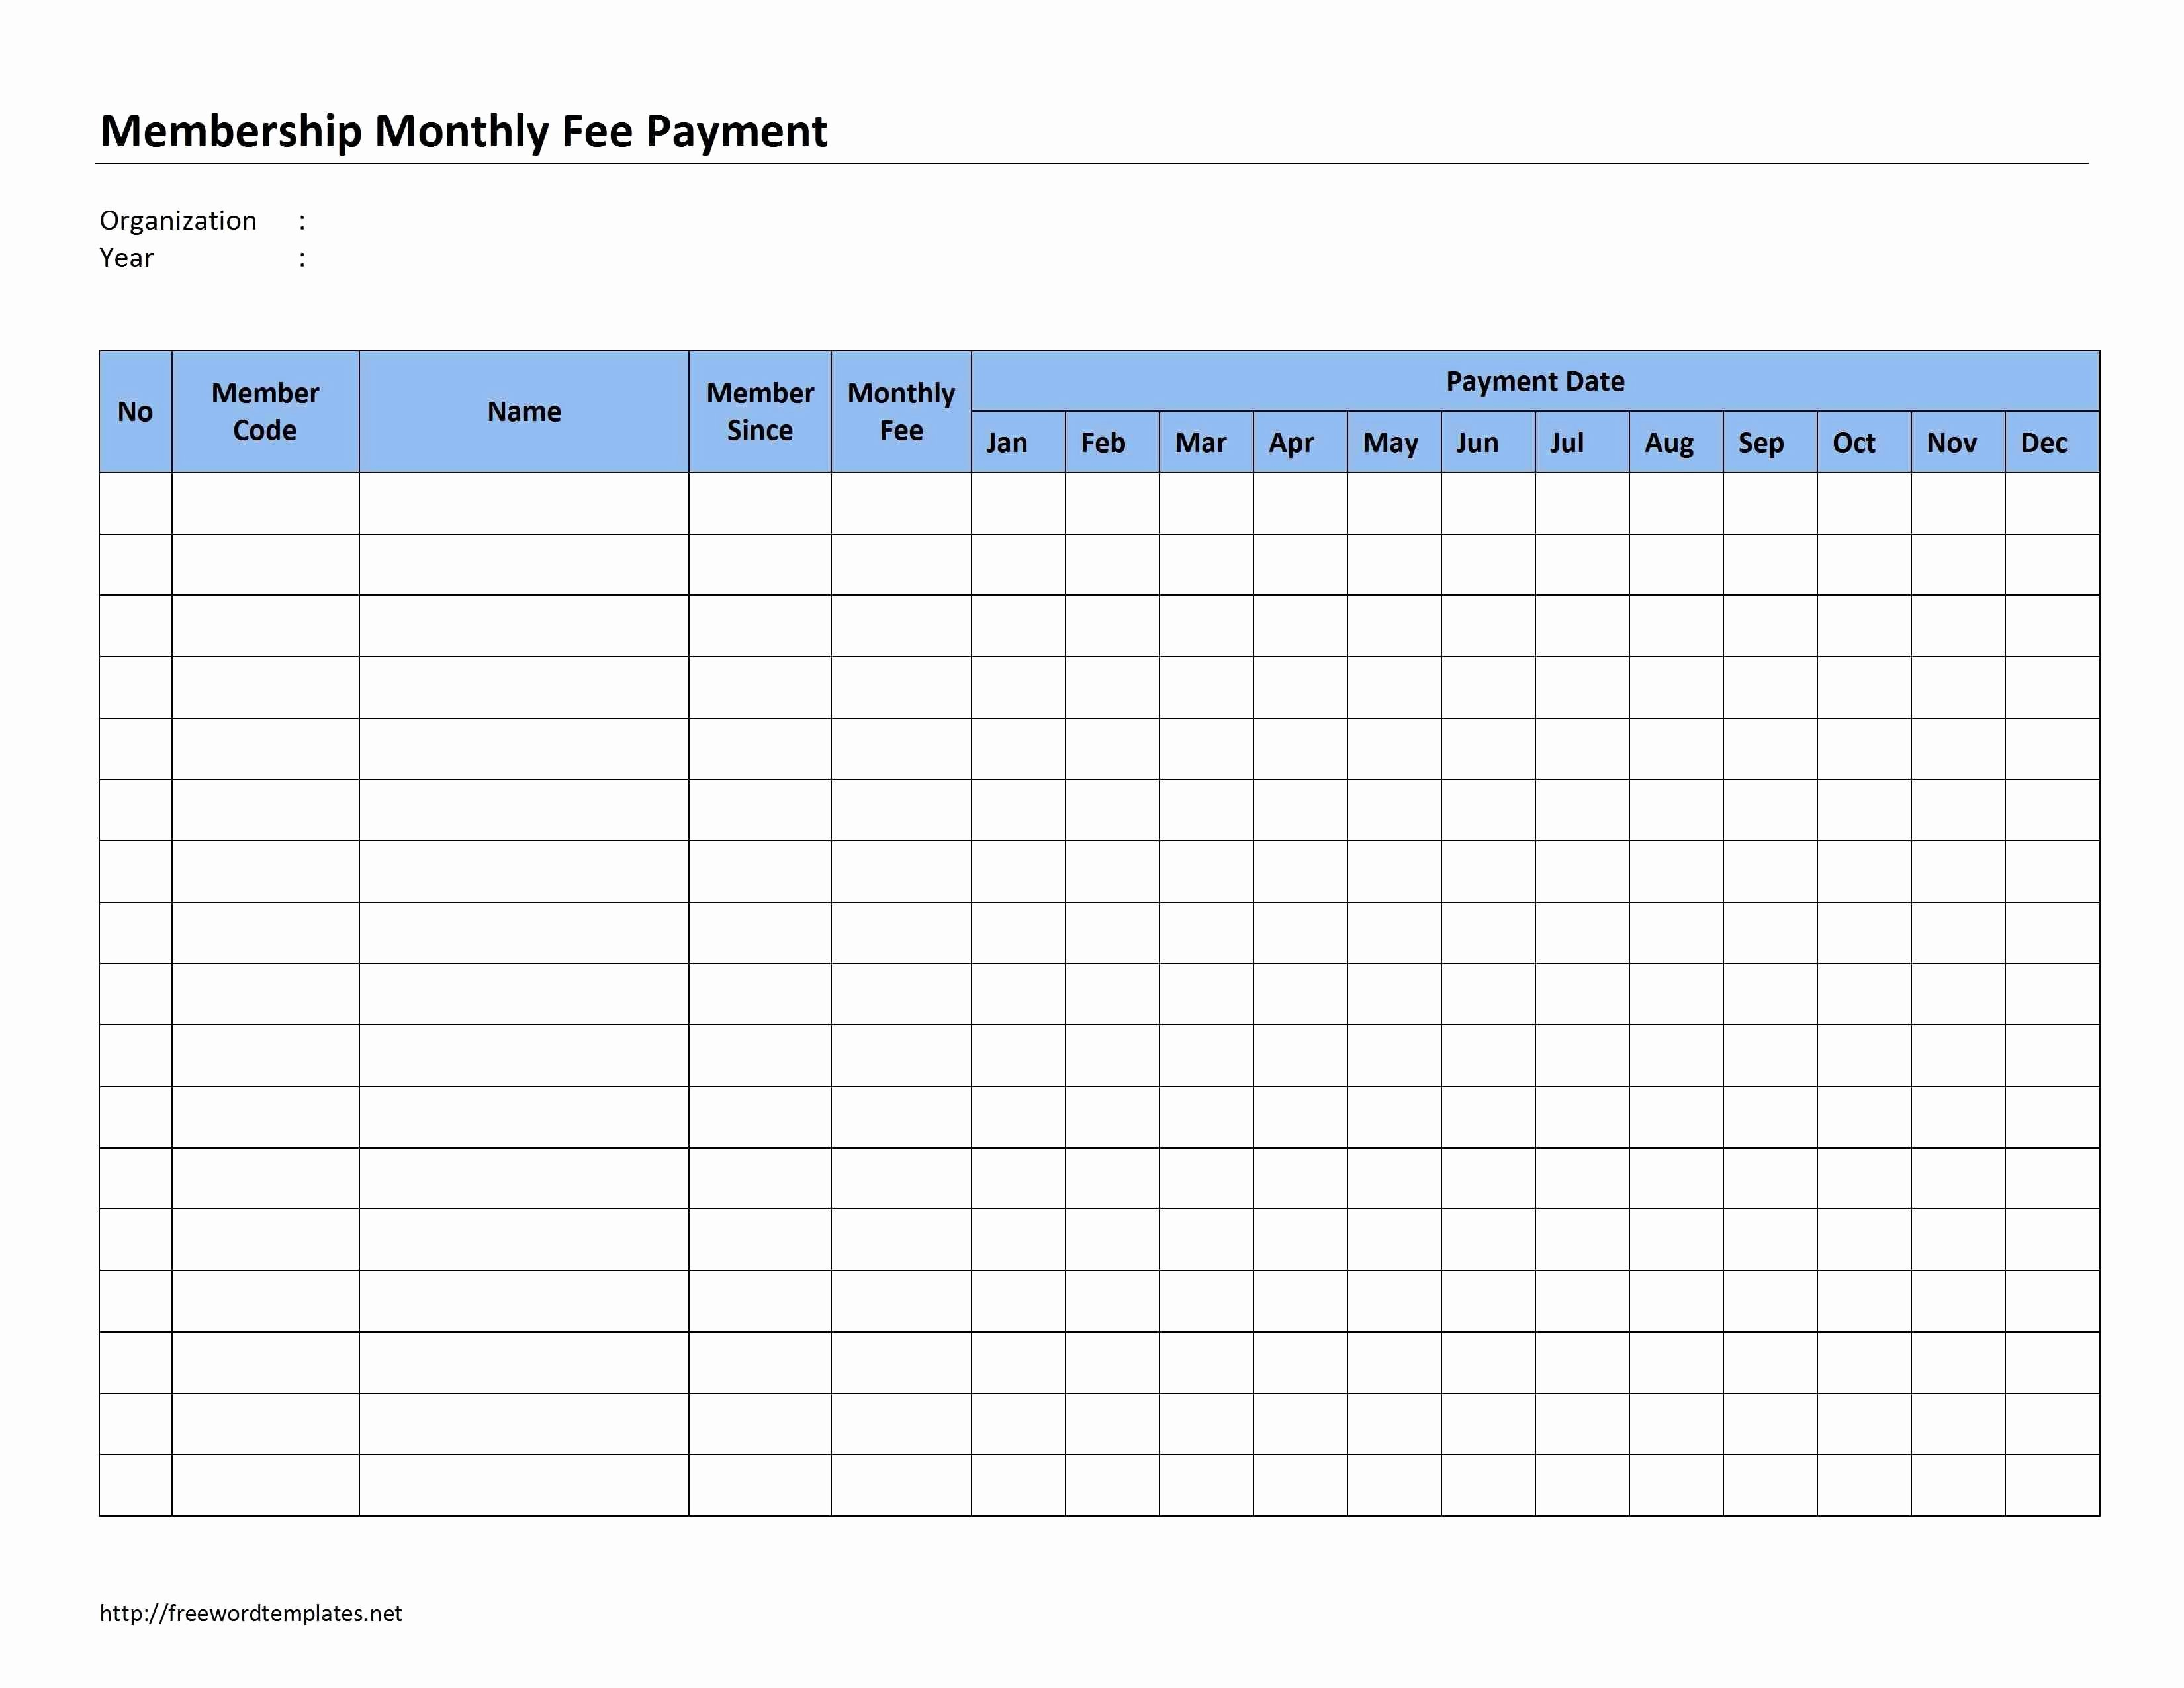 011 Template Ideas Bill Pay Calendar Monthly Organizer Excel Free with regard to Printable Monthly Calendar Templates Bills